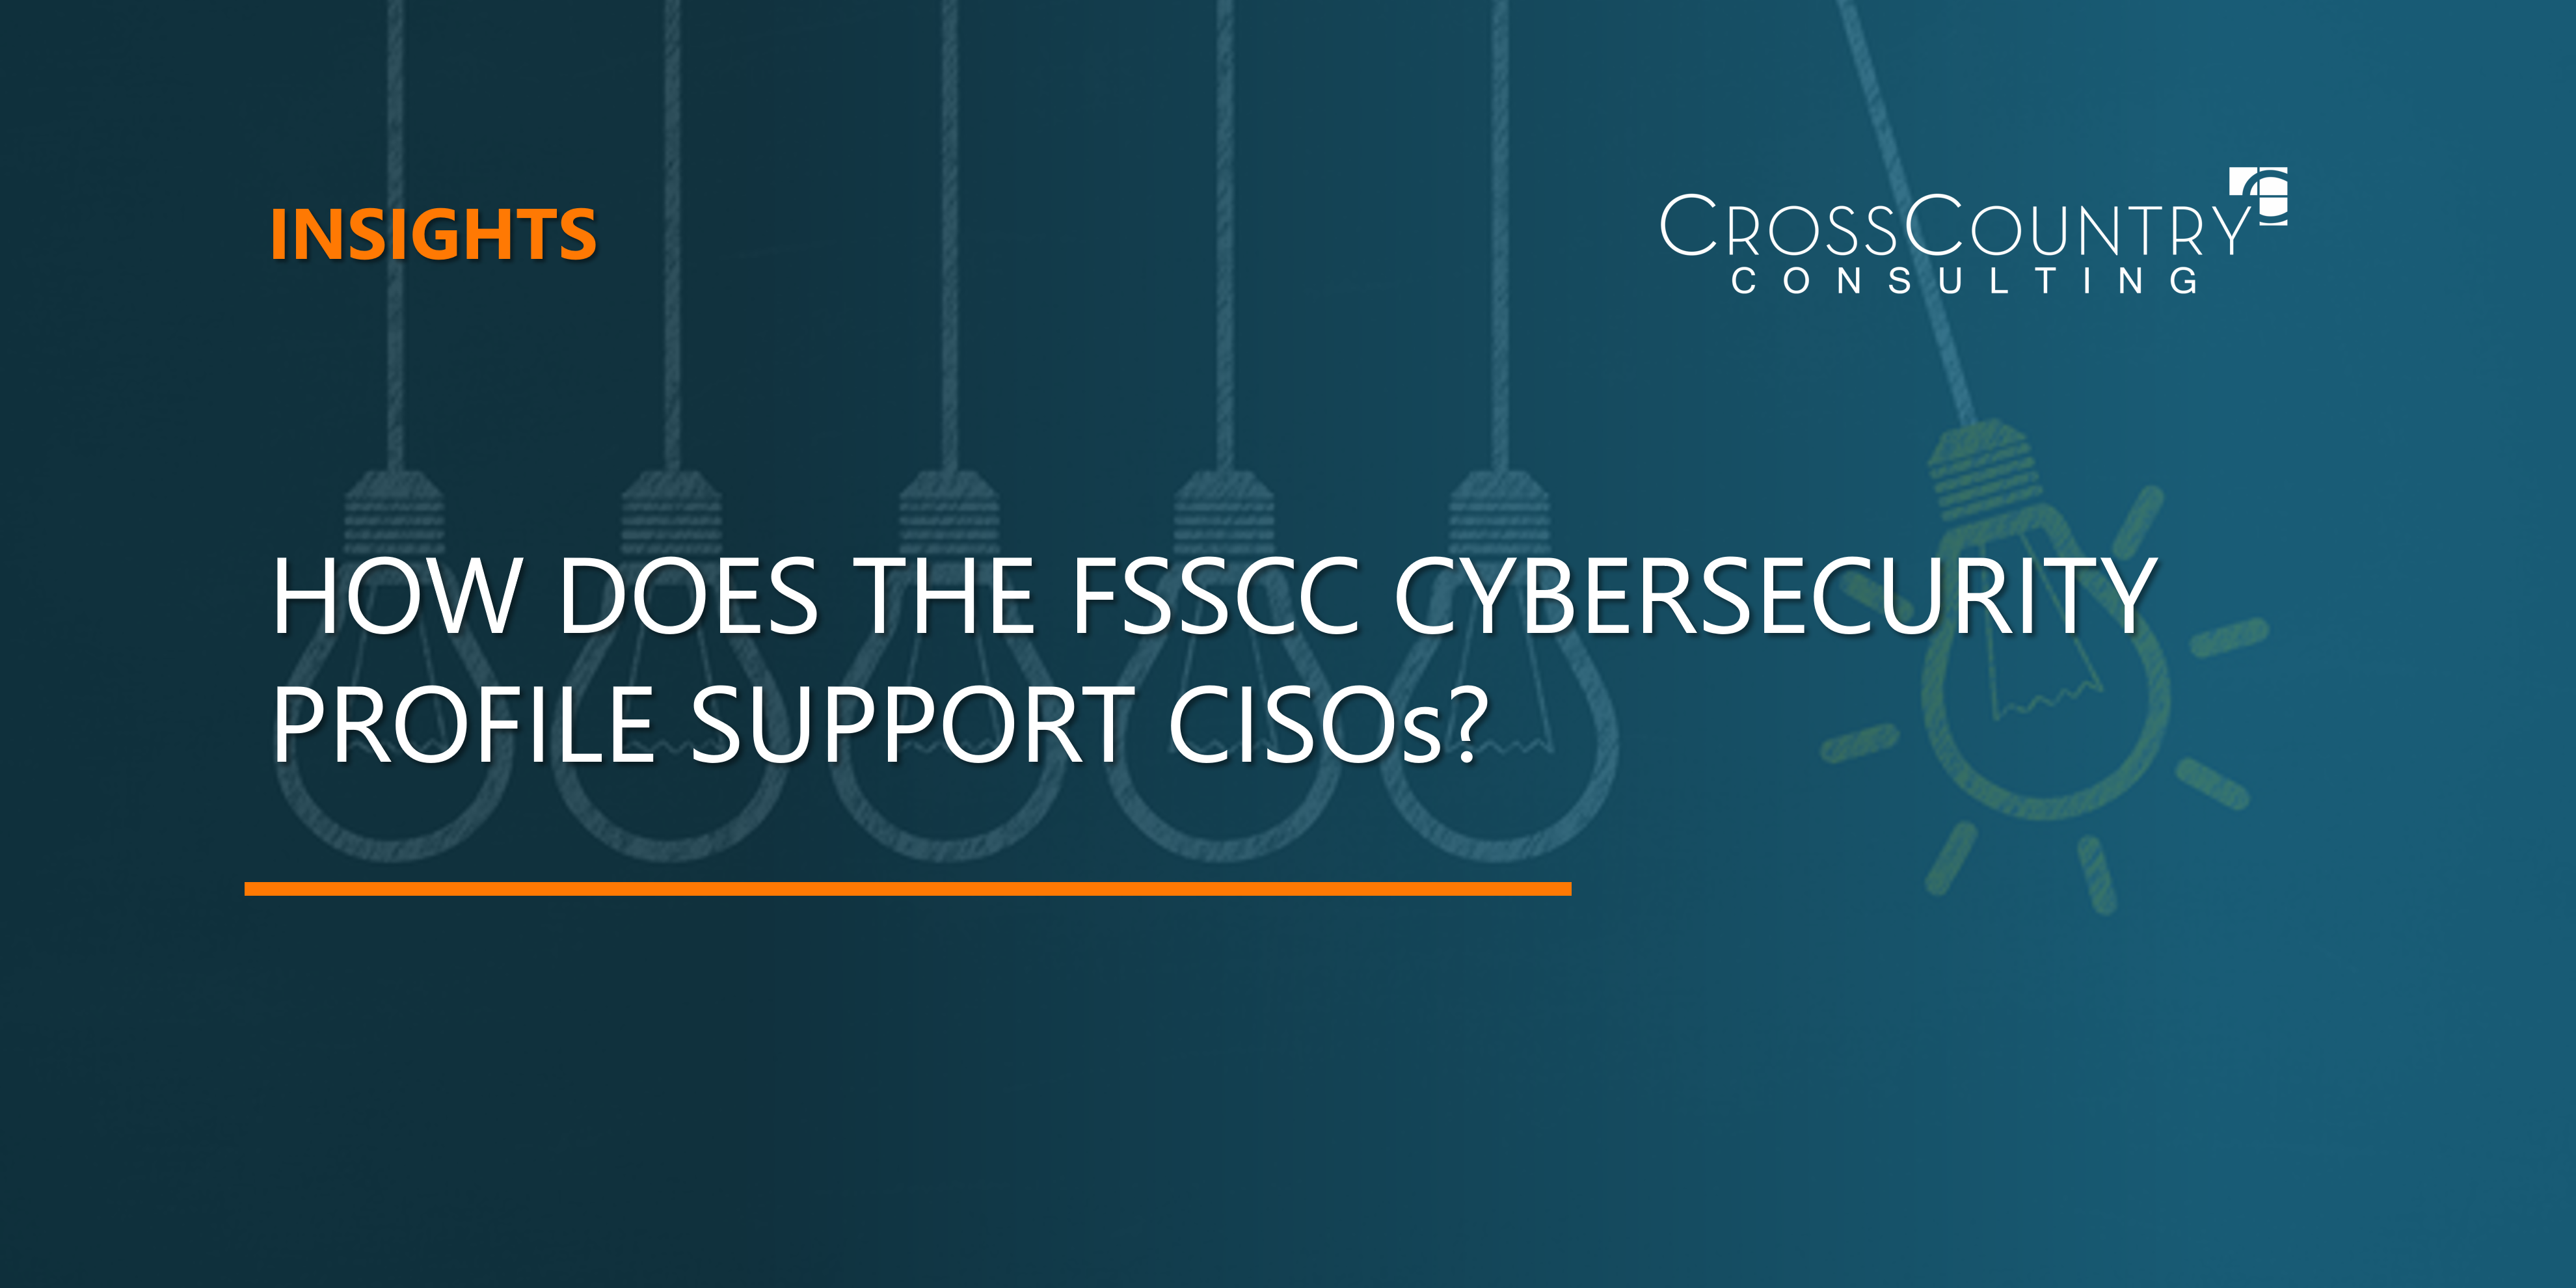 How Does the FSSCC Cybersecurity Profile Support CISOs?